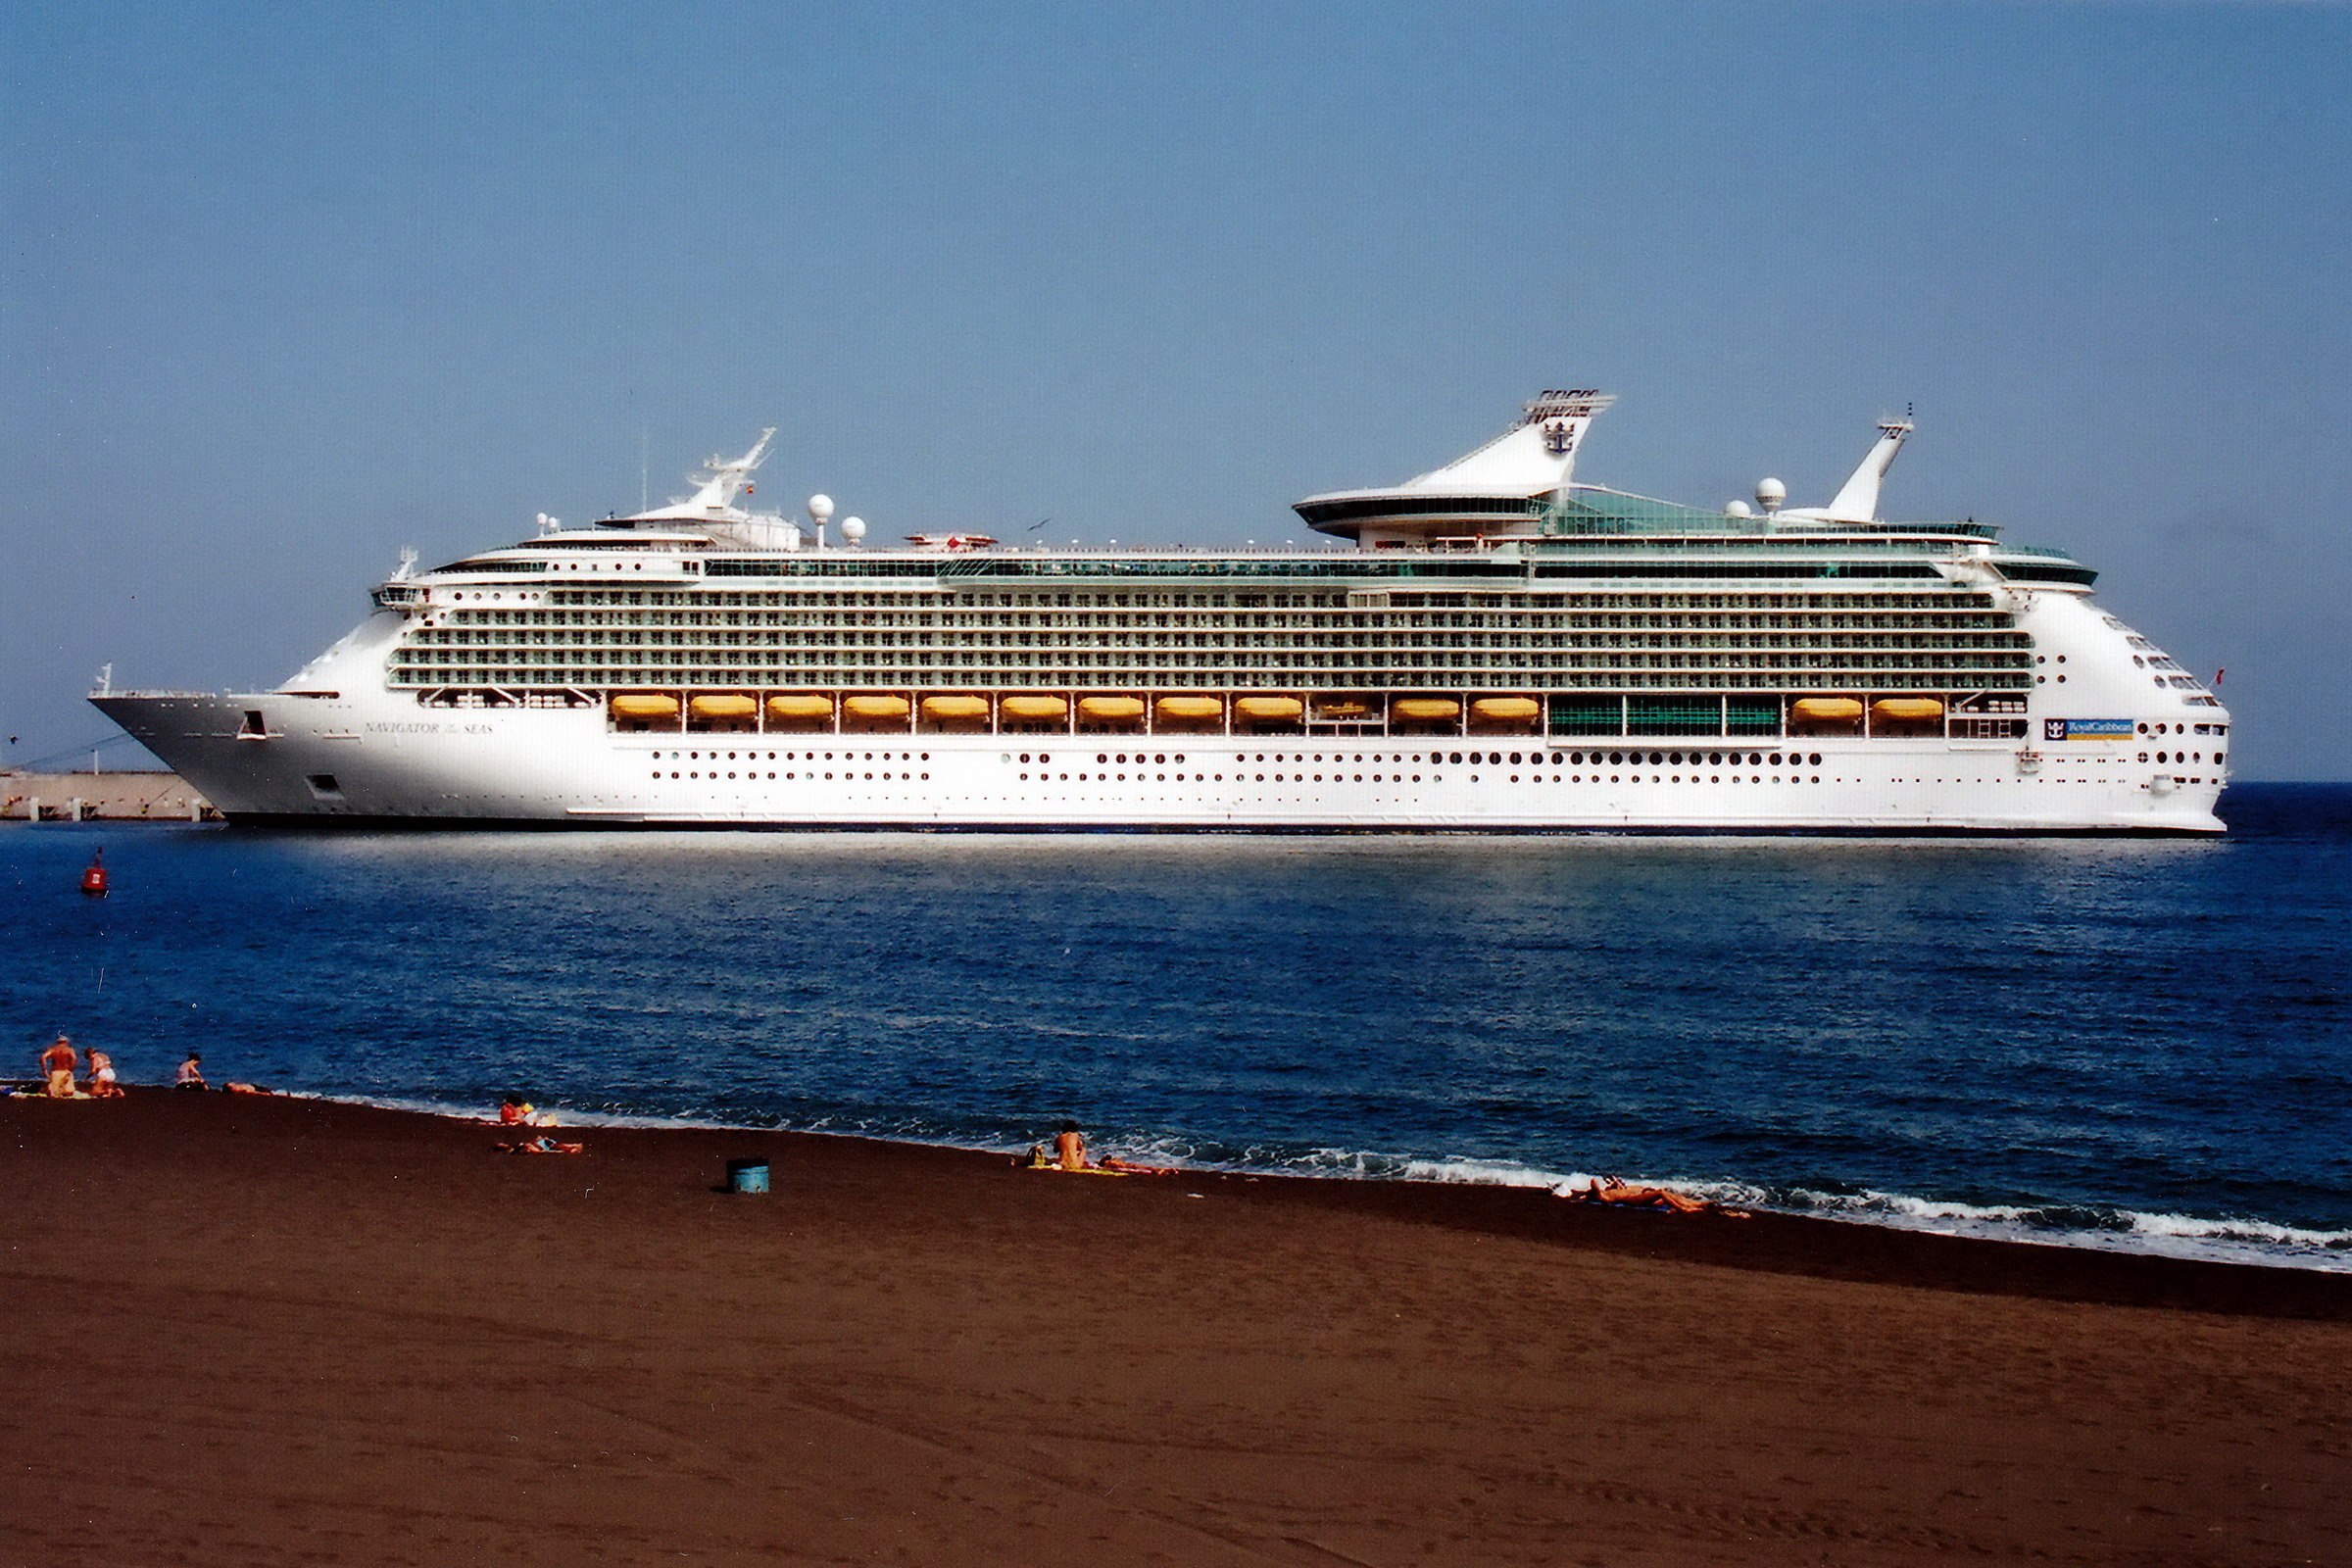 NAVIGATOR_OF_THE_SEAS_9227508__©Noray_(1